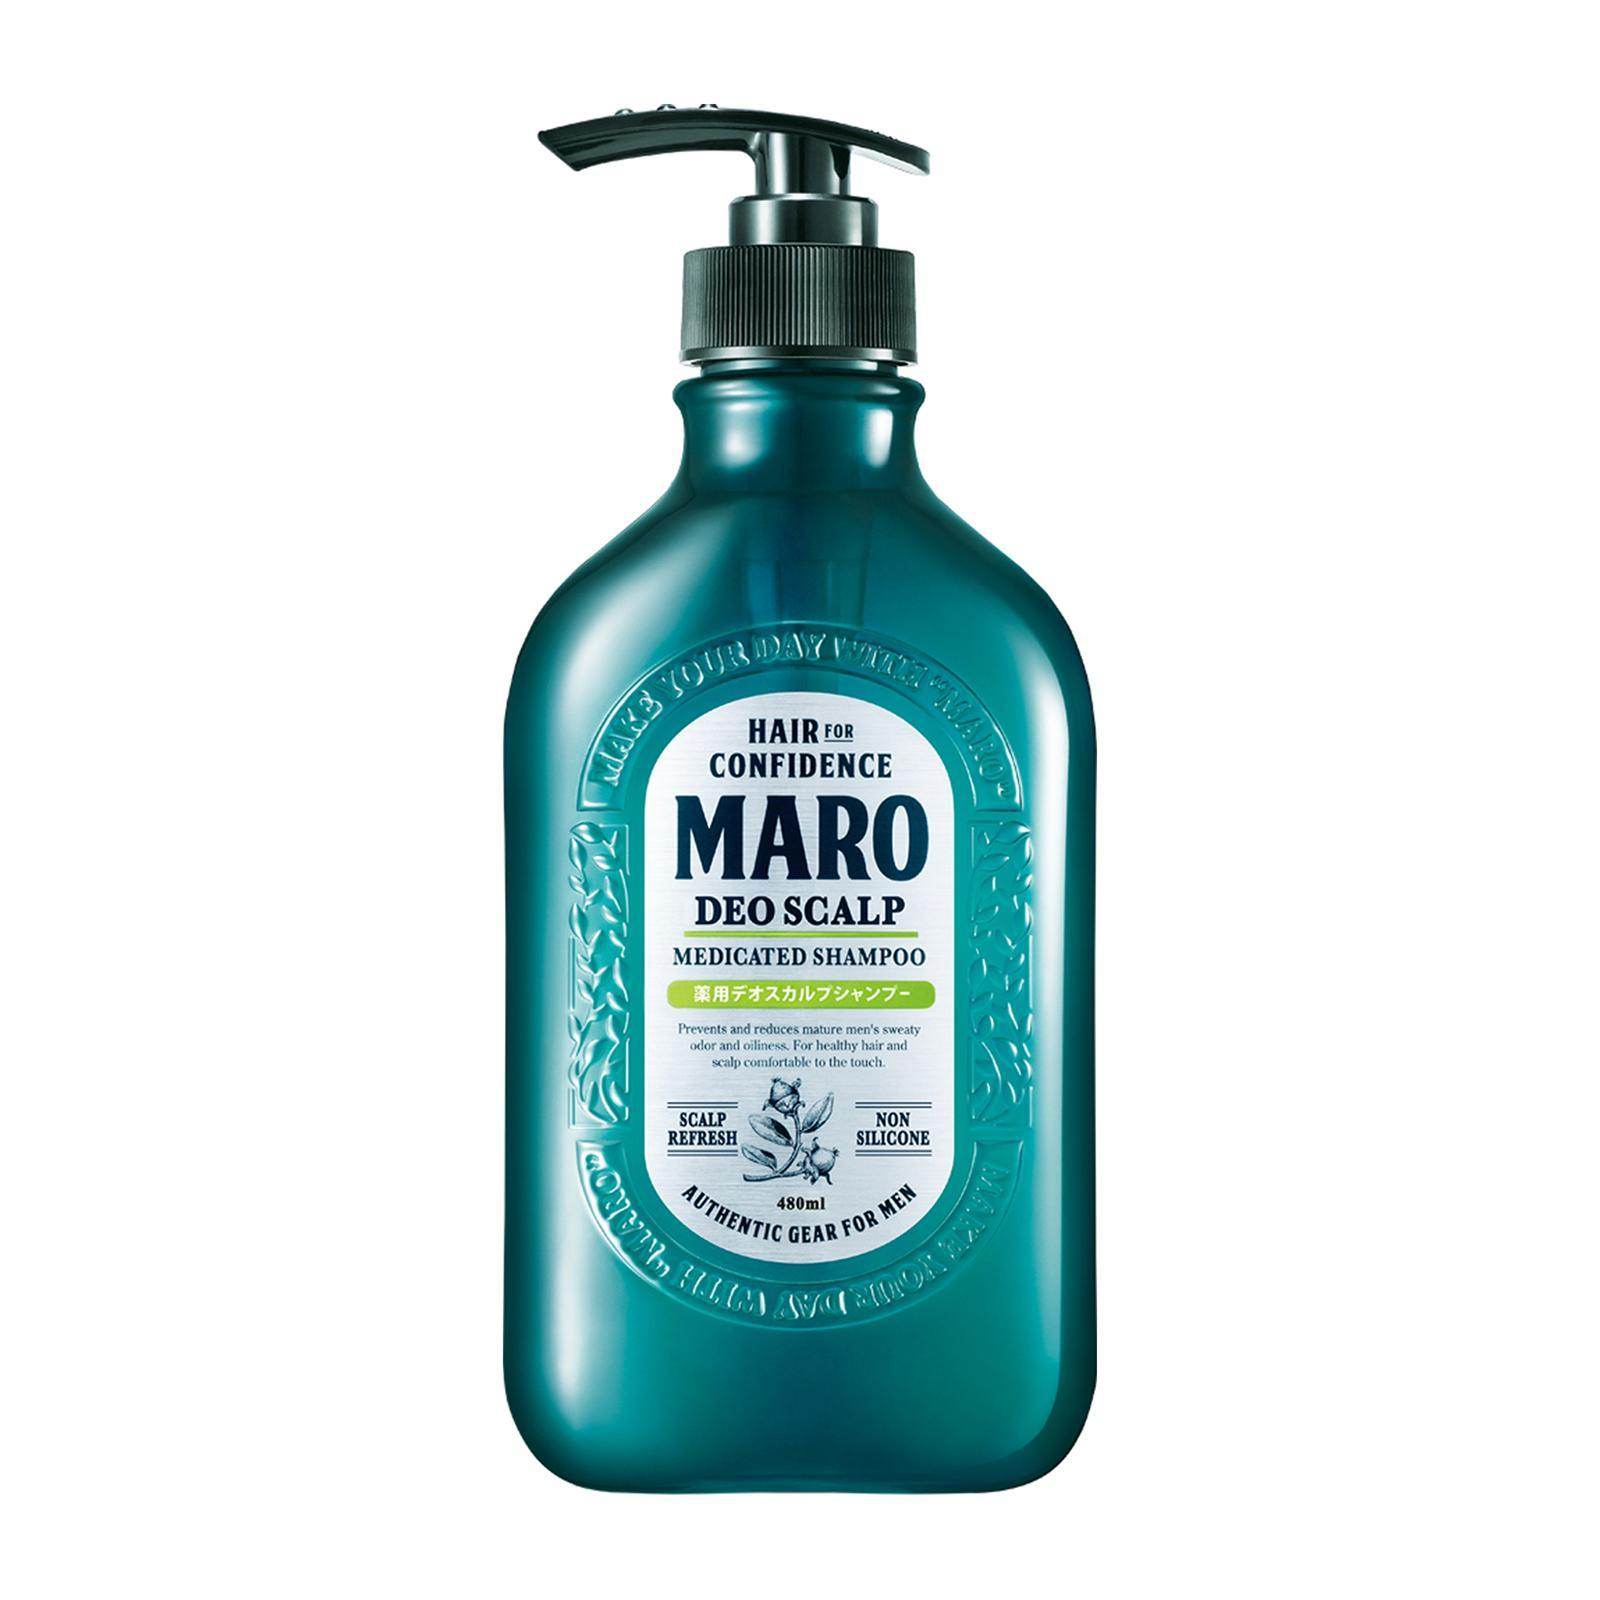 Maro Deo Scalp Shampoo Cool, 400ml